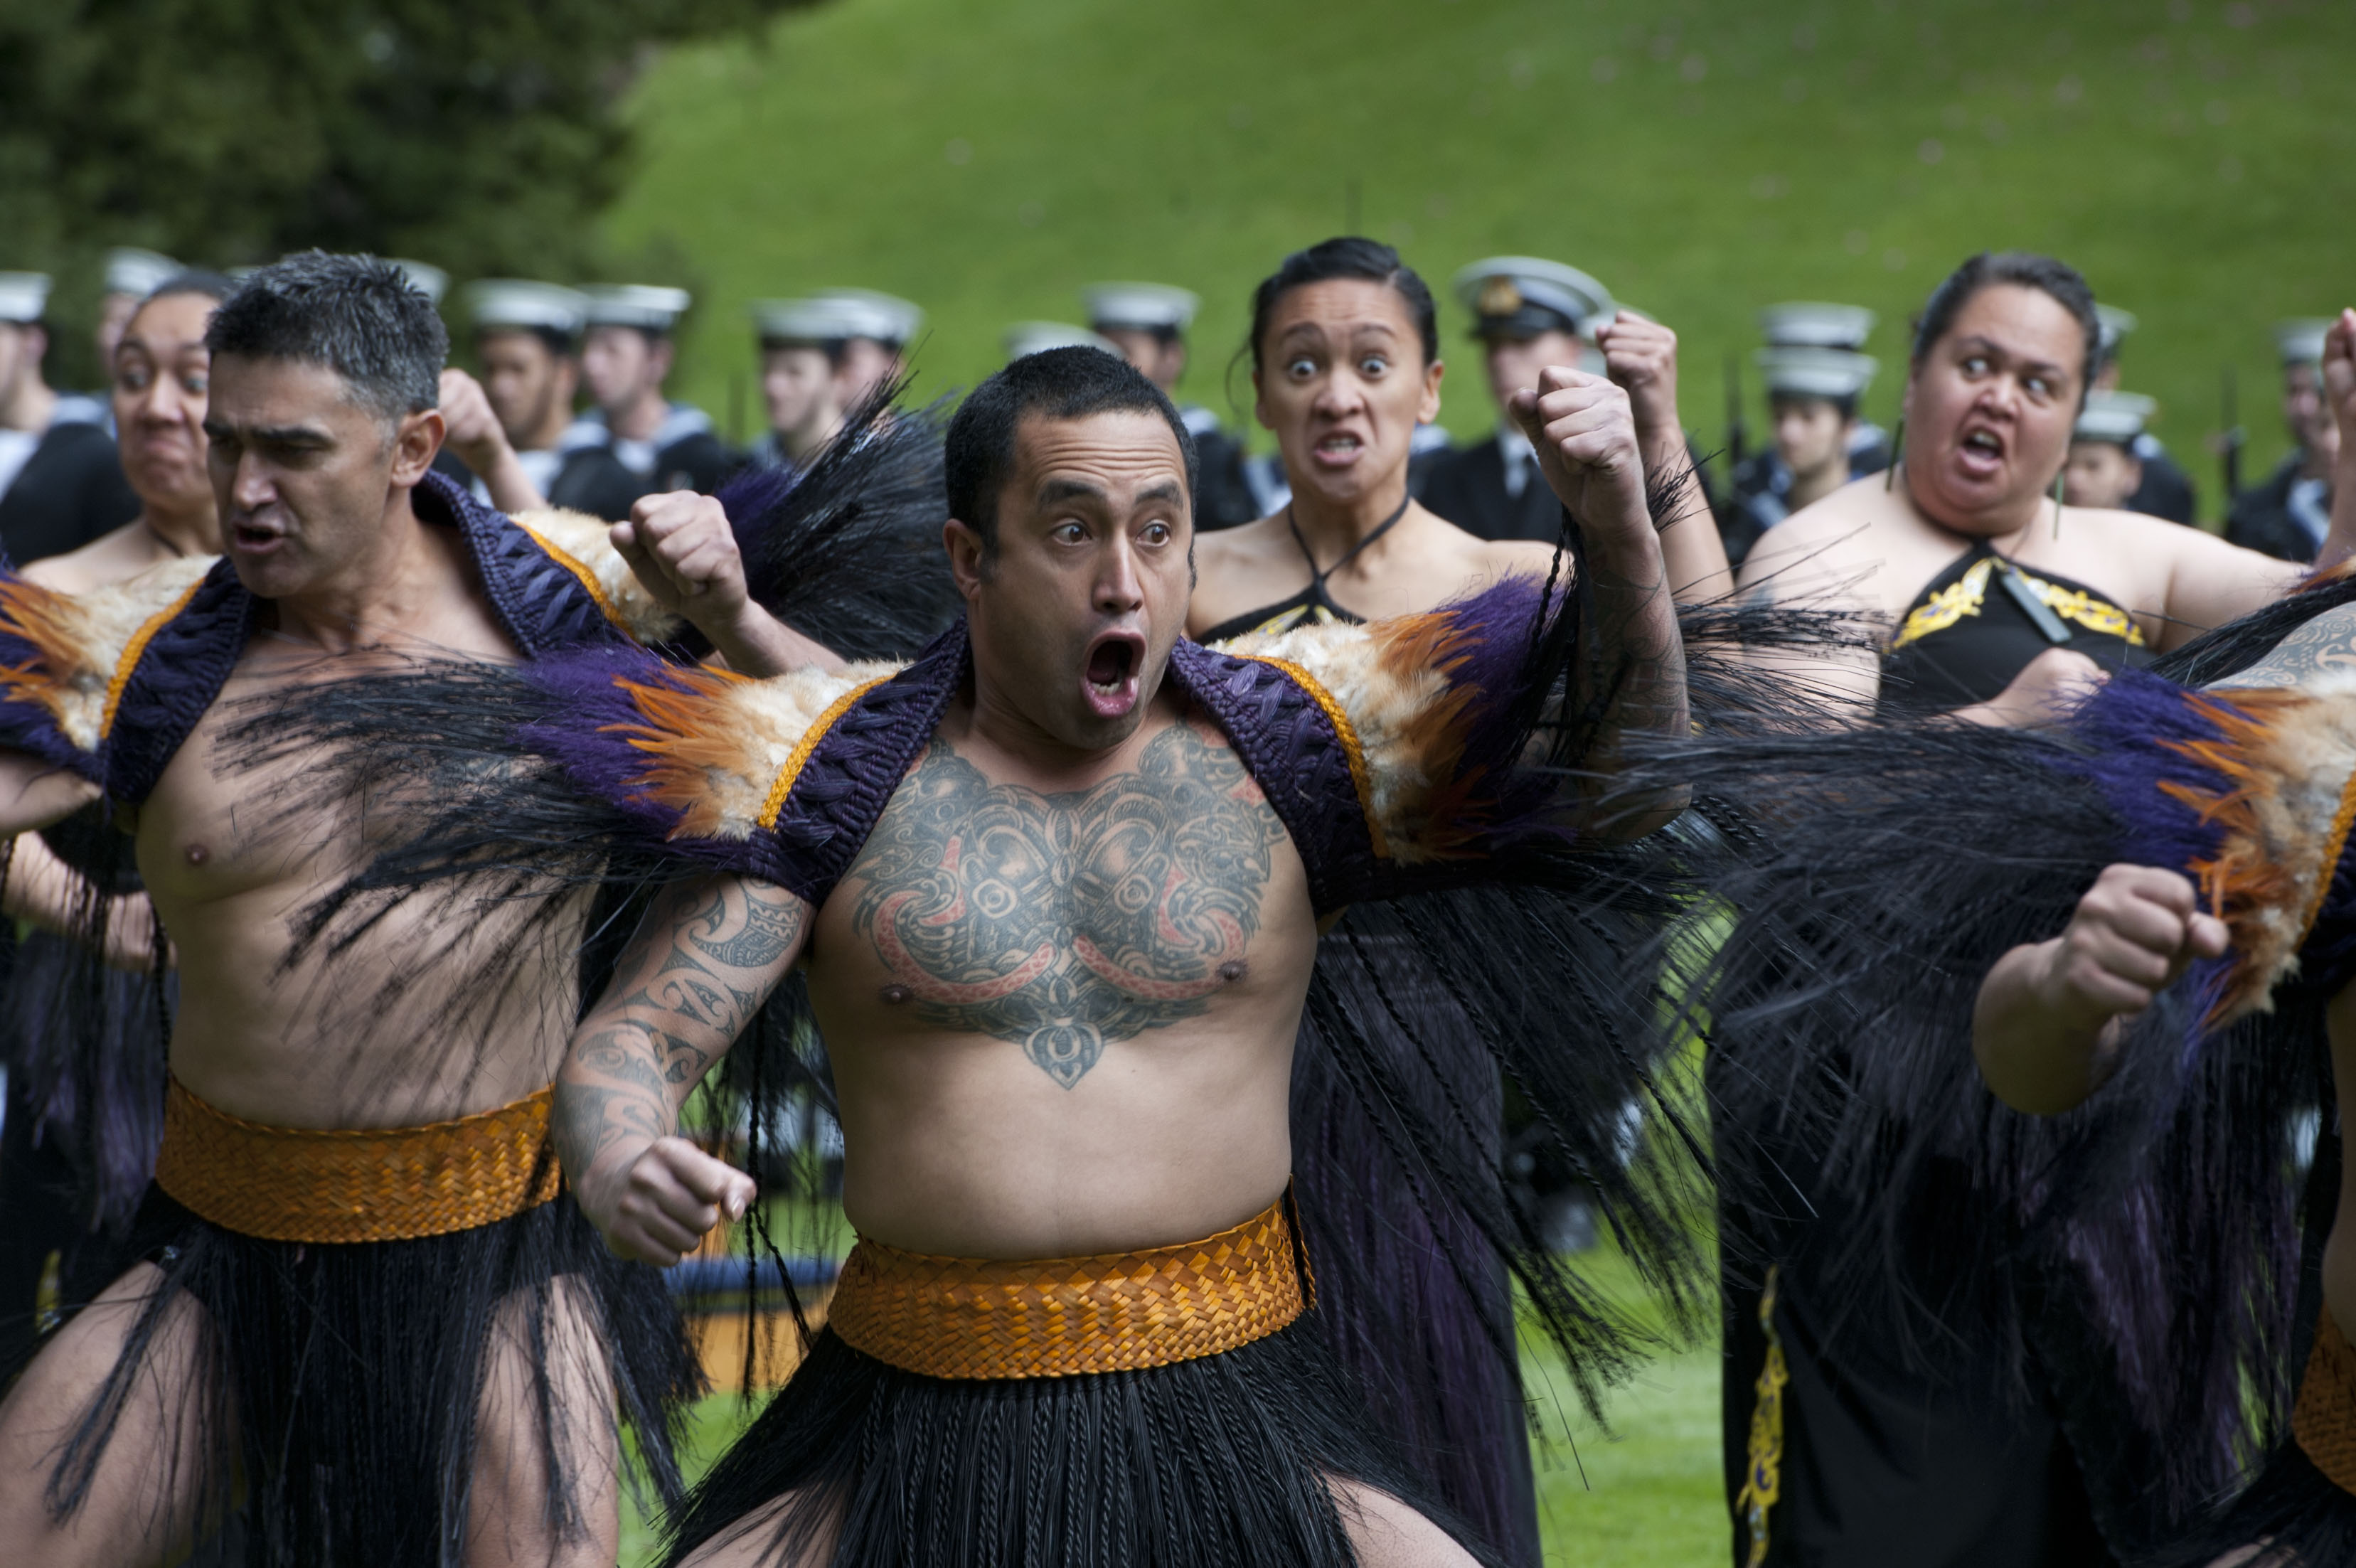 Maori warriors preform a haka dance of welcome for United States Secretary of Defense Leon E. Panetta during a Powhiri ceremony while visiting Auckland, New Zealand September 21, 2012. The ceremony is an ancient Maori tradition used to determine if visitors came in peace or with hostile intent. DoD photo by Erin A. Kirk-Cuomo (Released)